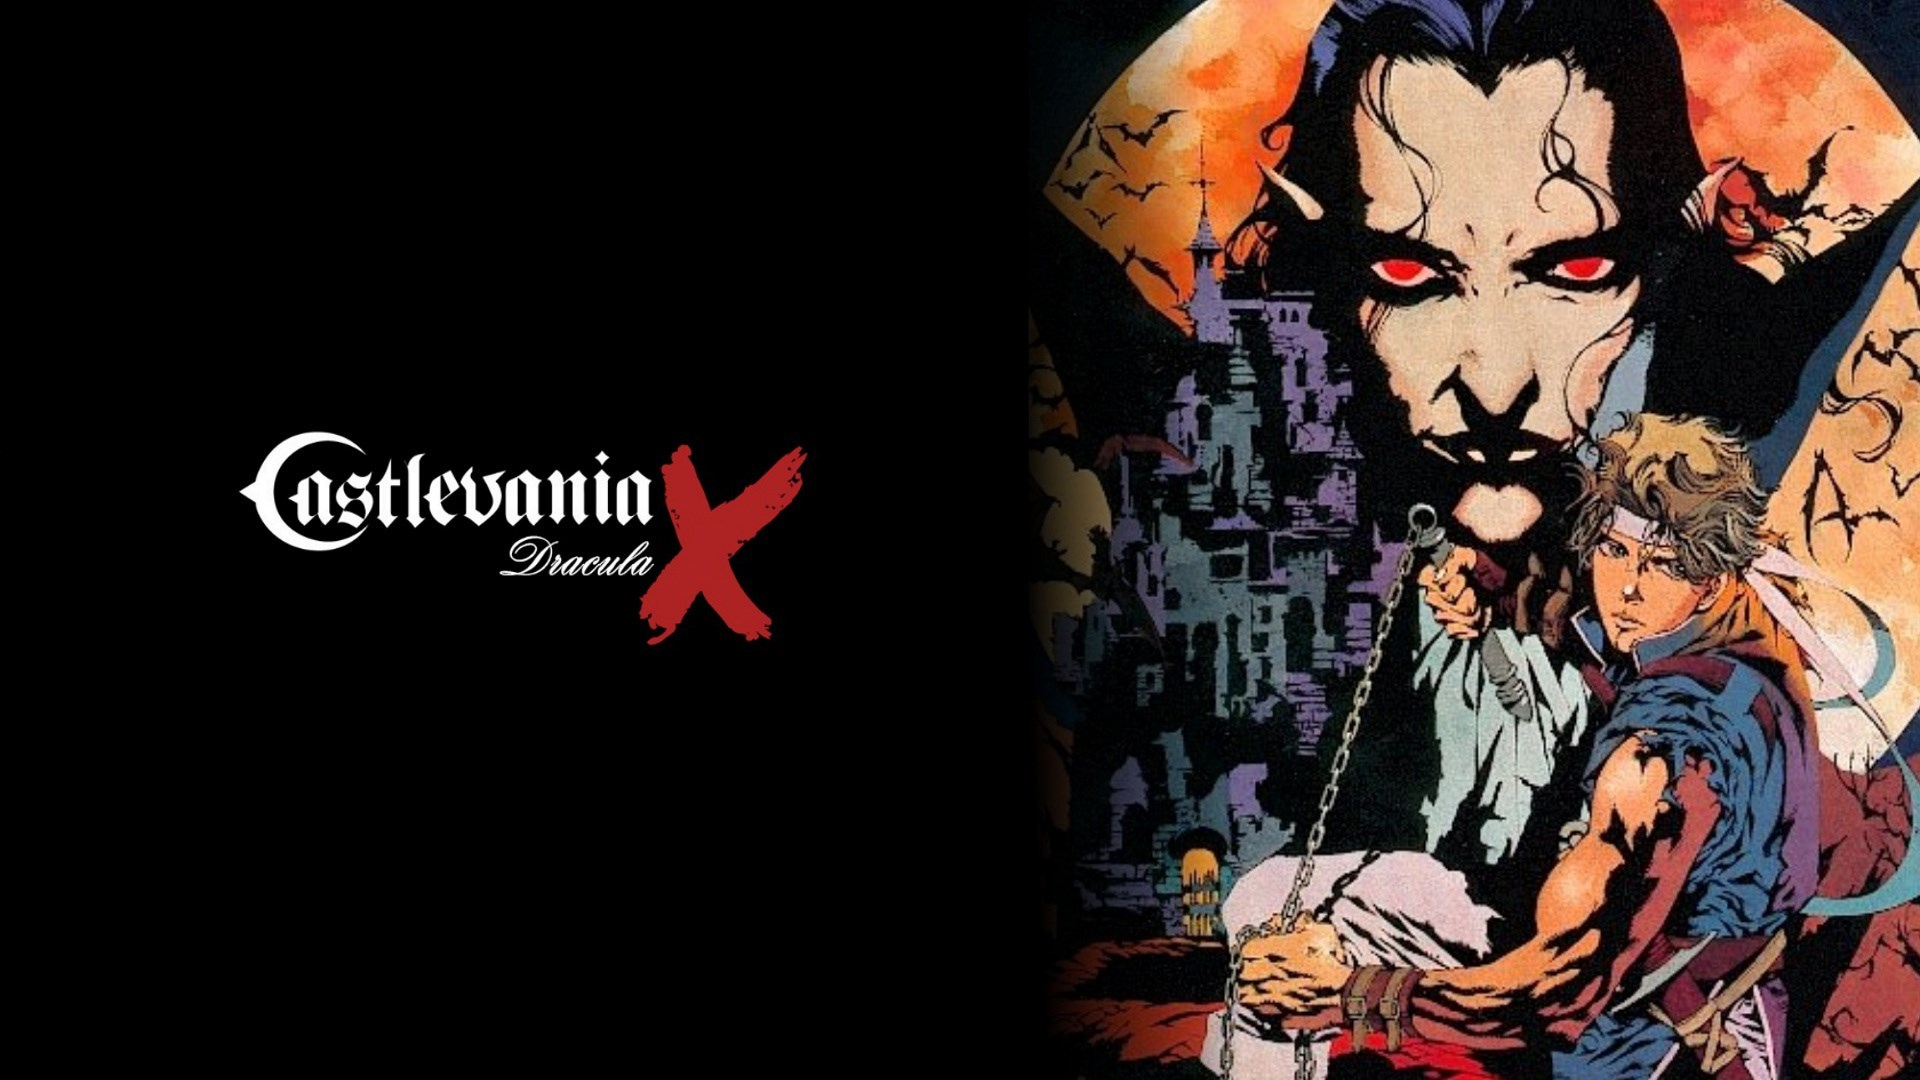 Castlevania Dracula Images 1920x1080 Download Hd Wallpaper Wallpapertip